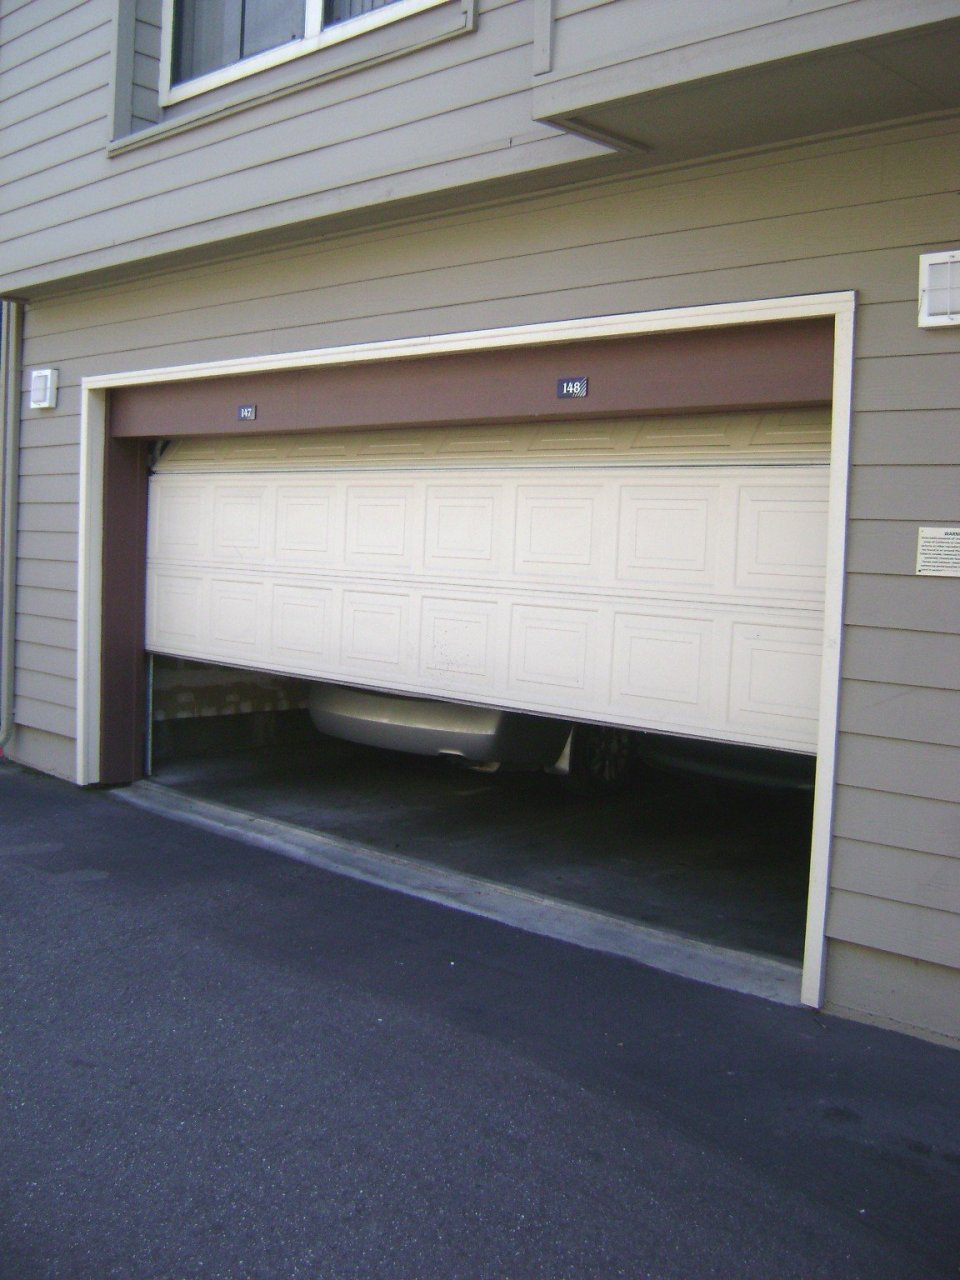 Nice What To Do When Your Garage Door Wonu0027t Close All The Way Jonathan 4 Years  Ago. 1,9892.0K. What To Do When Your Garage Door Wonu0027t Close All The Way